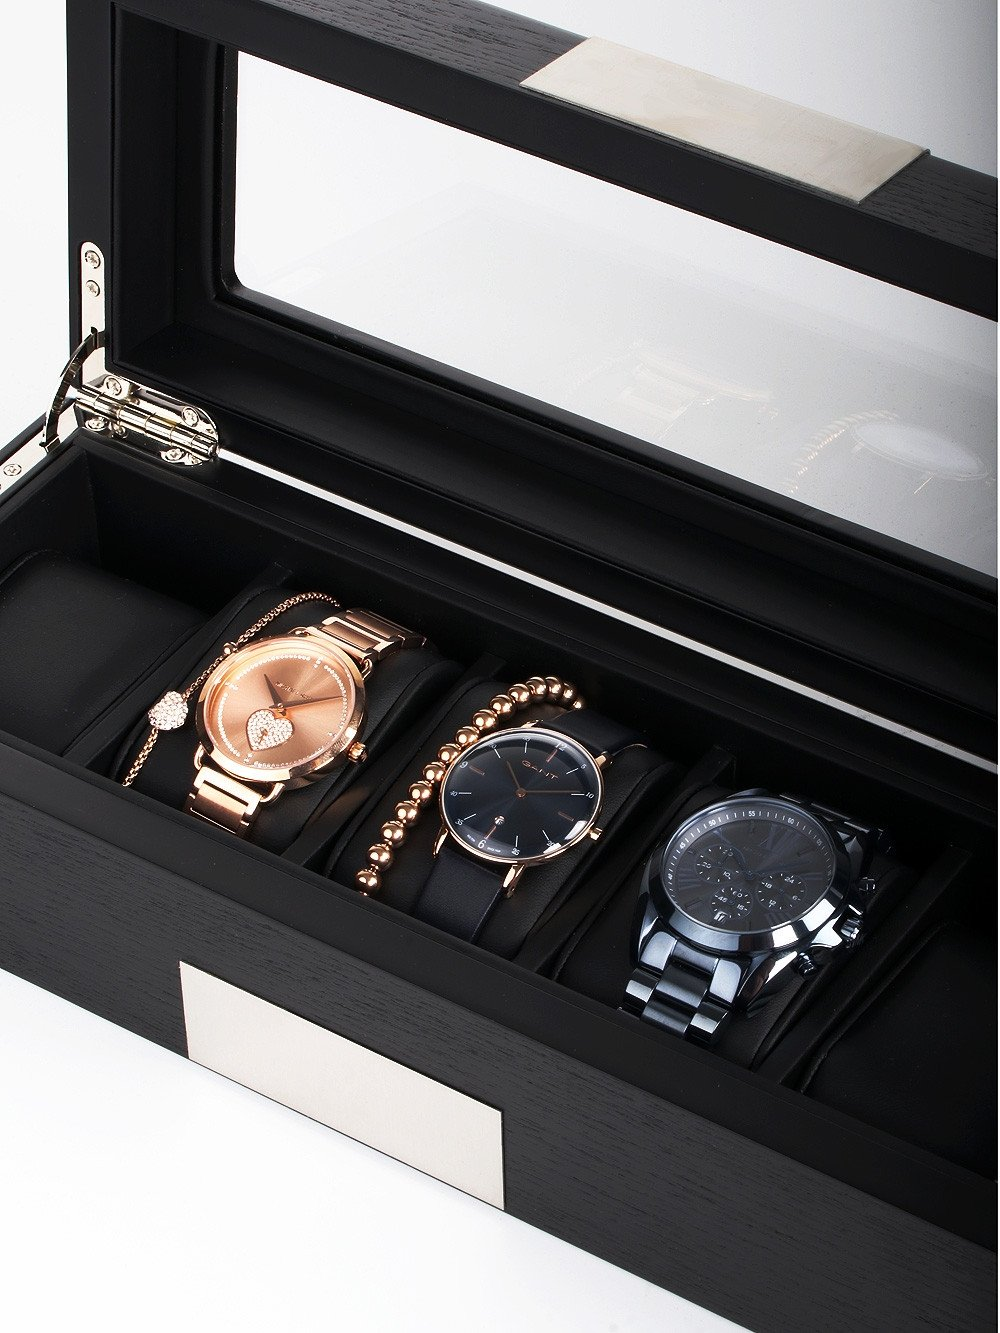 Rothenschild Watch Box RS-2350-5BL for 5 Watches Black